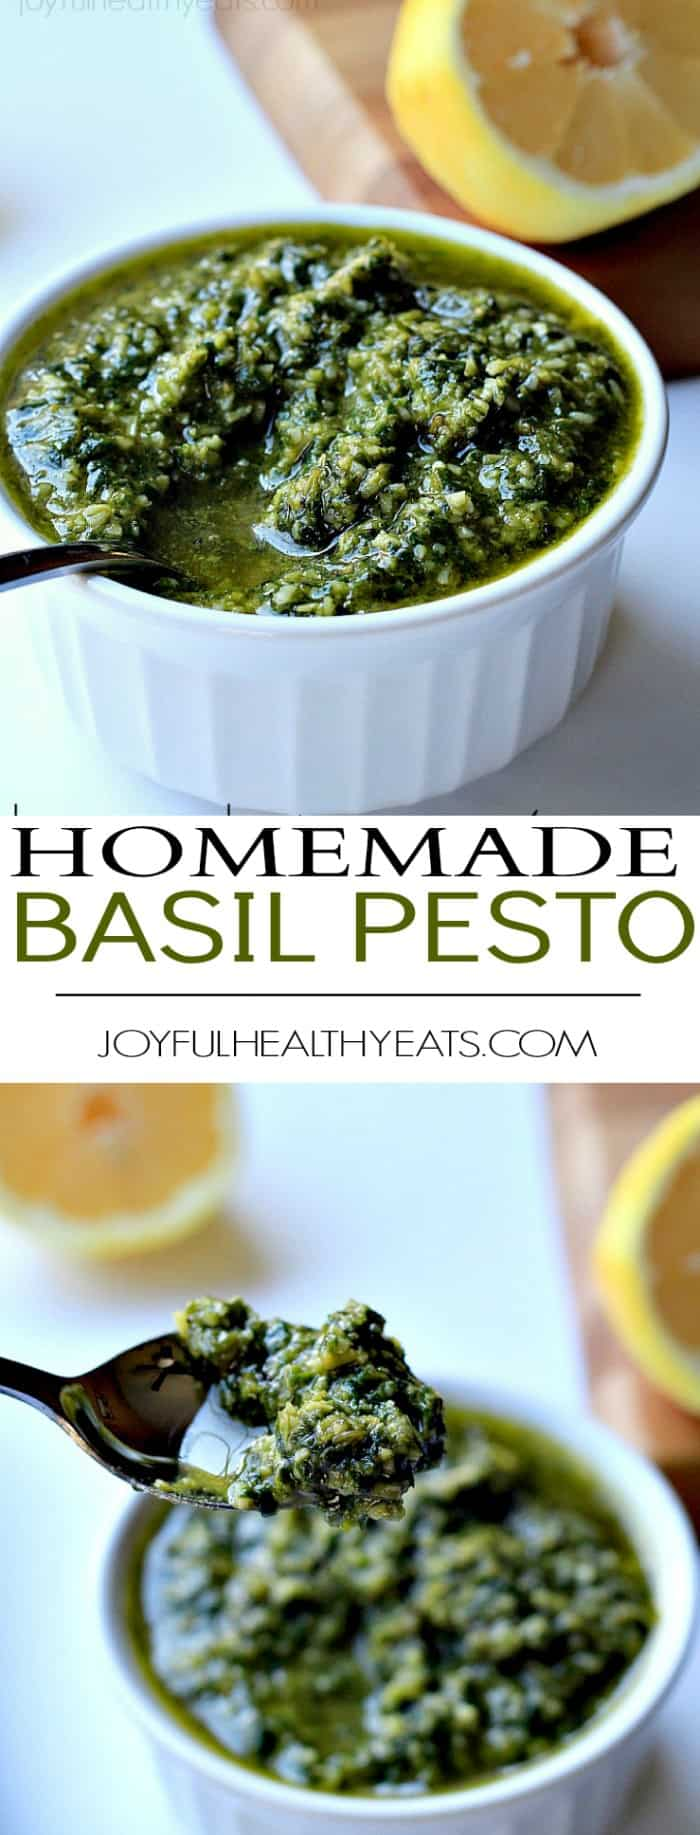 A basic light, fresh, and Herby Homemade Basil Pesto. {made in 5 minutes} | www.joyfulhealthyeats.com #recipes